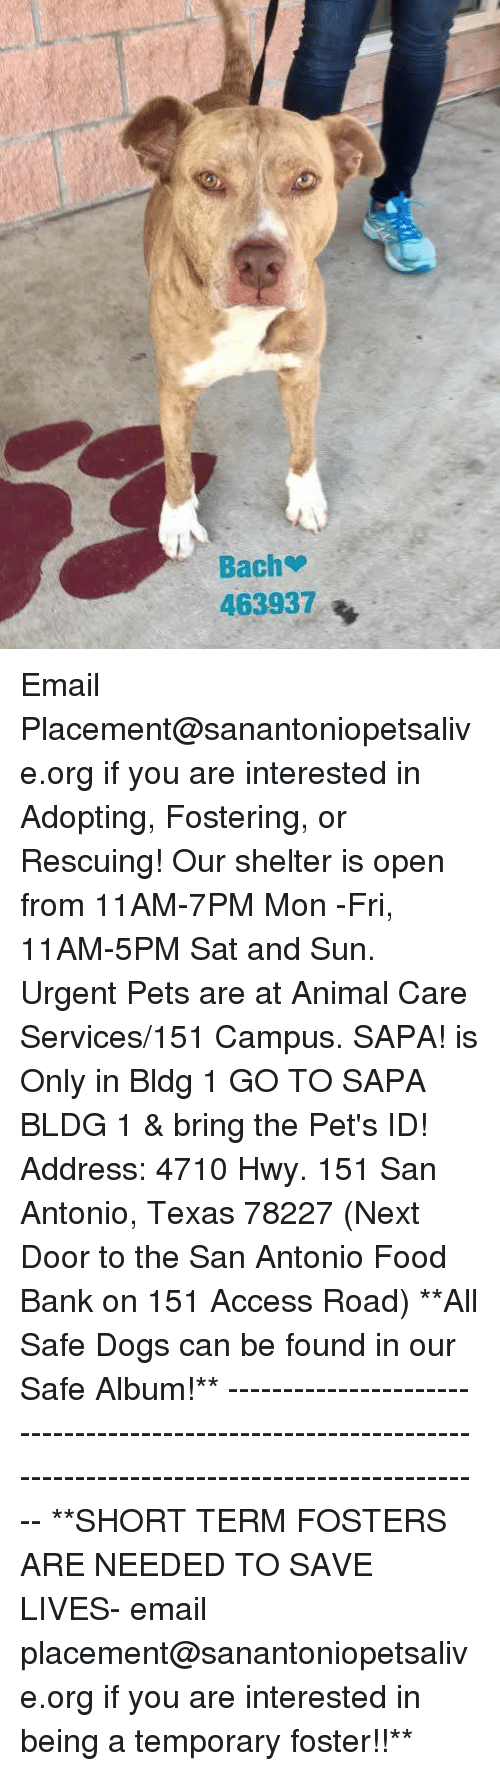 Dogs, Food, and Memes: Bach  463937 Email Placement@sanantoniopetsalive.org if you are interested in Adopting, Fostering, or Rescuing!  Our shelter is open from 11AM-7PM Mon -Fri, 11AM-5PM Sat and Sun.  Urgent Pets are at Animal Care Services/151 Campus. SAPA! is Only in Bldg 1 GO TO SAPA BLDG 1 & bring the Pet's ID! Address: 4710 Hwy. 151 San Antonio, Texas 78227 (Next Door to the San Antonio Food Bank on 151 Access Road)  **All Safe Dogs can be found in our Safe Album!** ---------------------------------------------------------------------------------------------------------- **SHORT TERM FOSTERS ARE NEEDED TO SAVE LIVES- email placement@sanantoniopetsalive.org if you are interested in being a temporary foster!!**